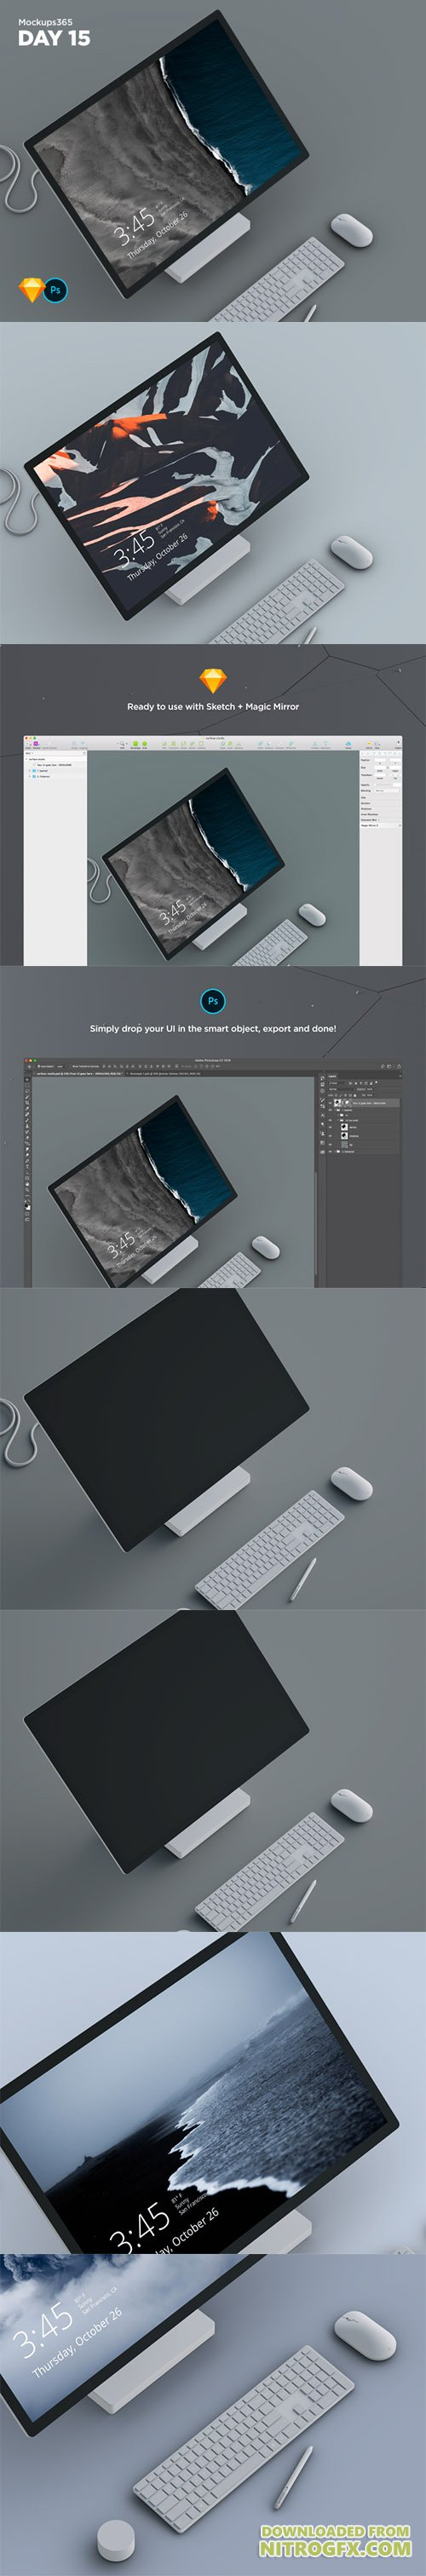 Mockups365: Day 15 - Microsoft Surface Studio mockup for Sketch & Photoshop 4K